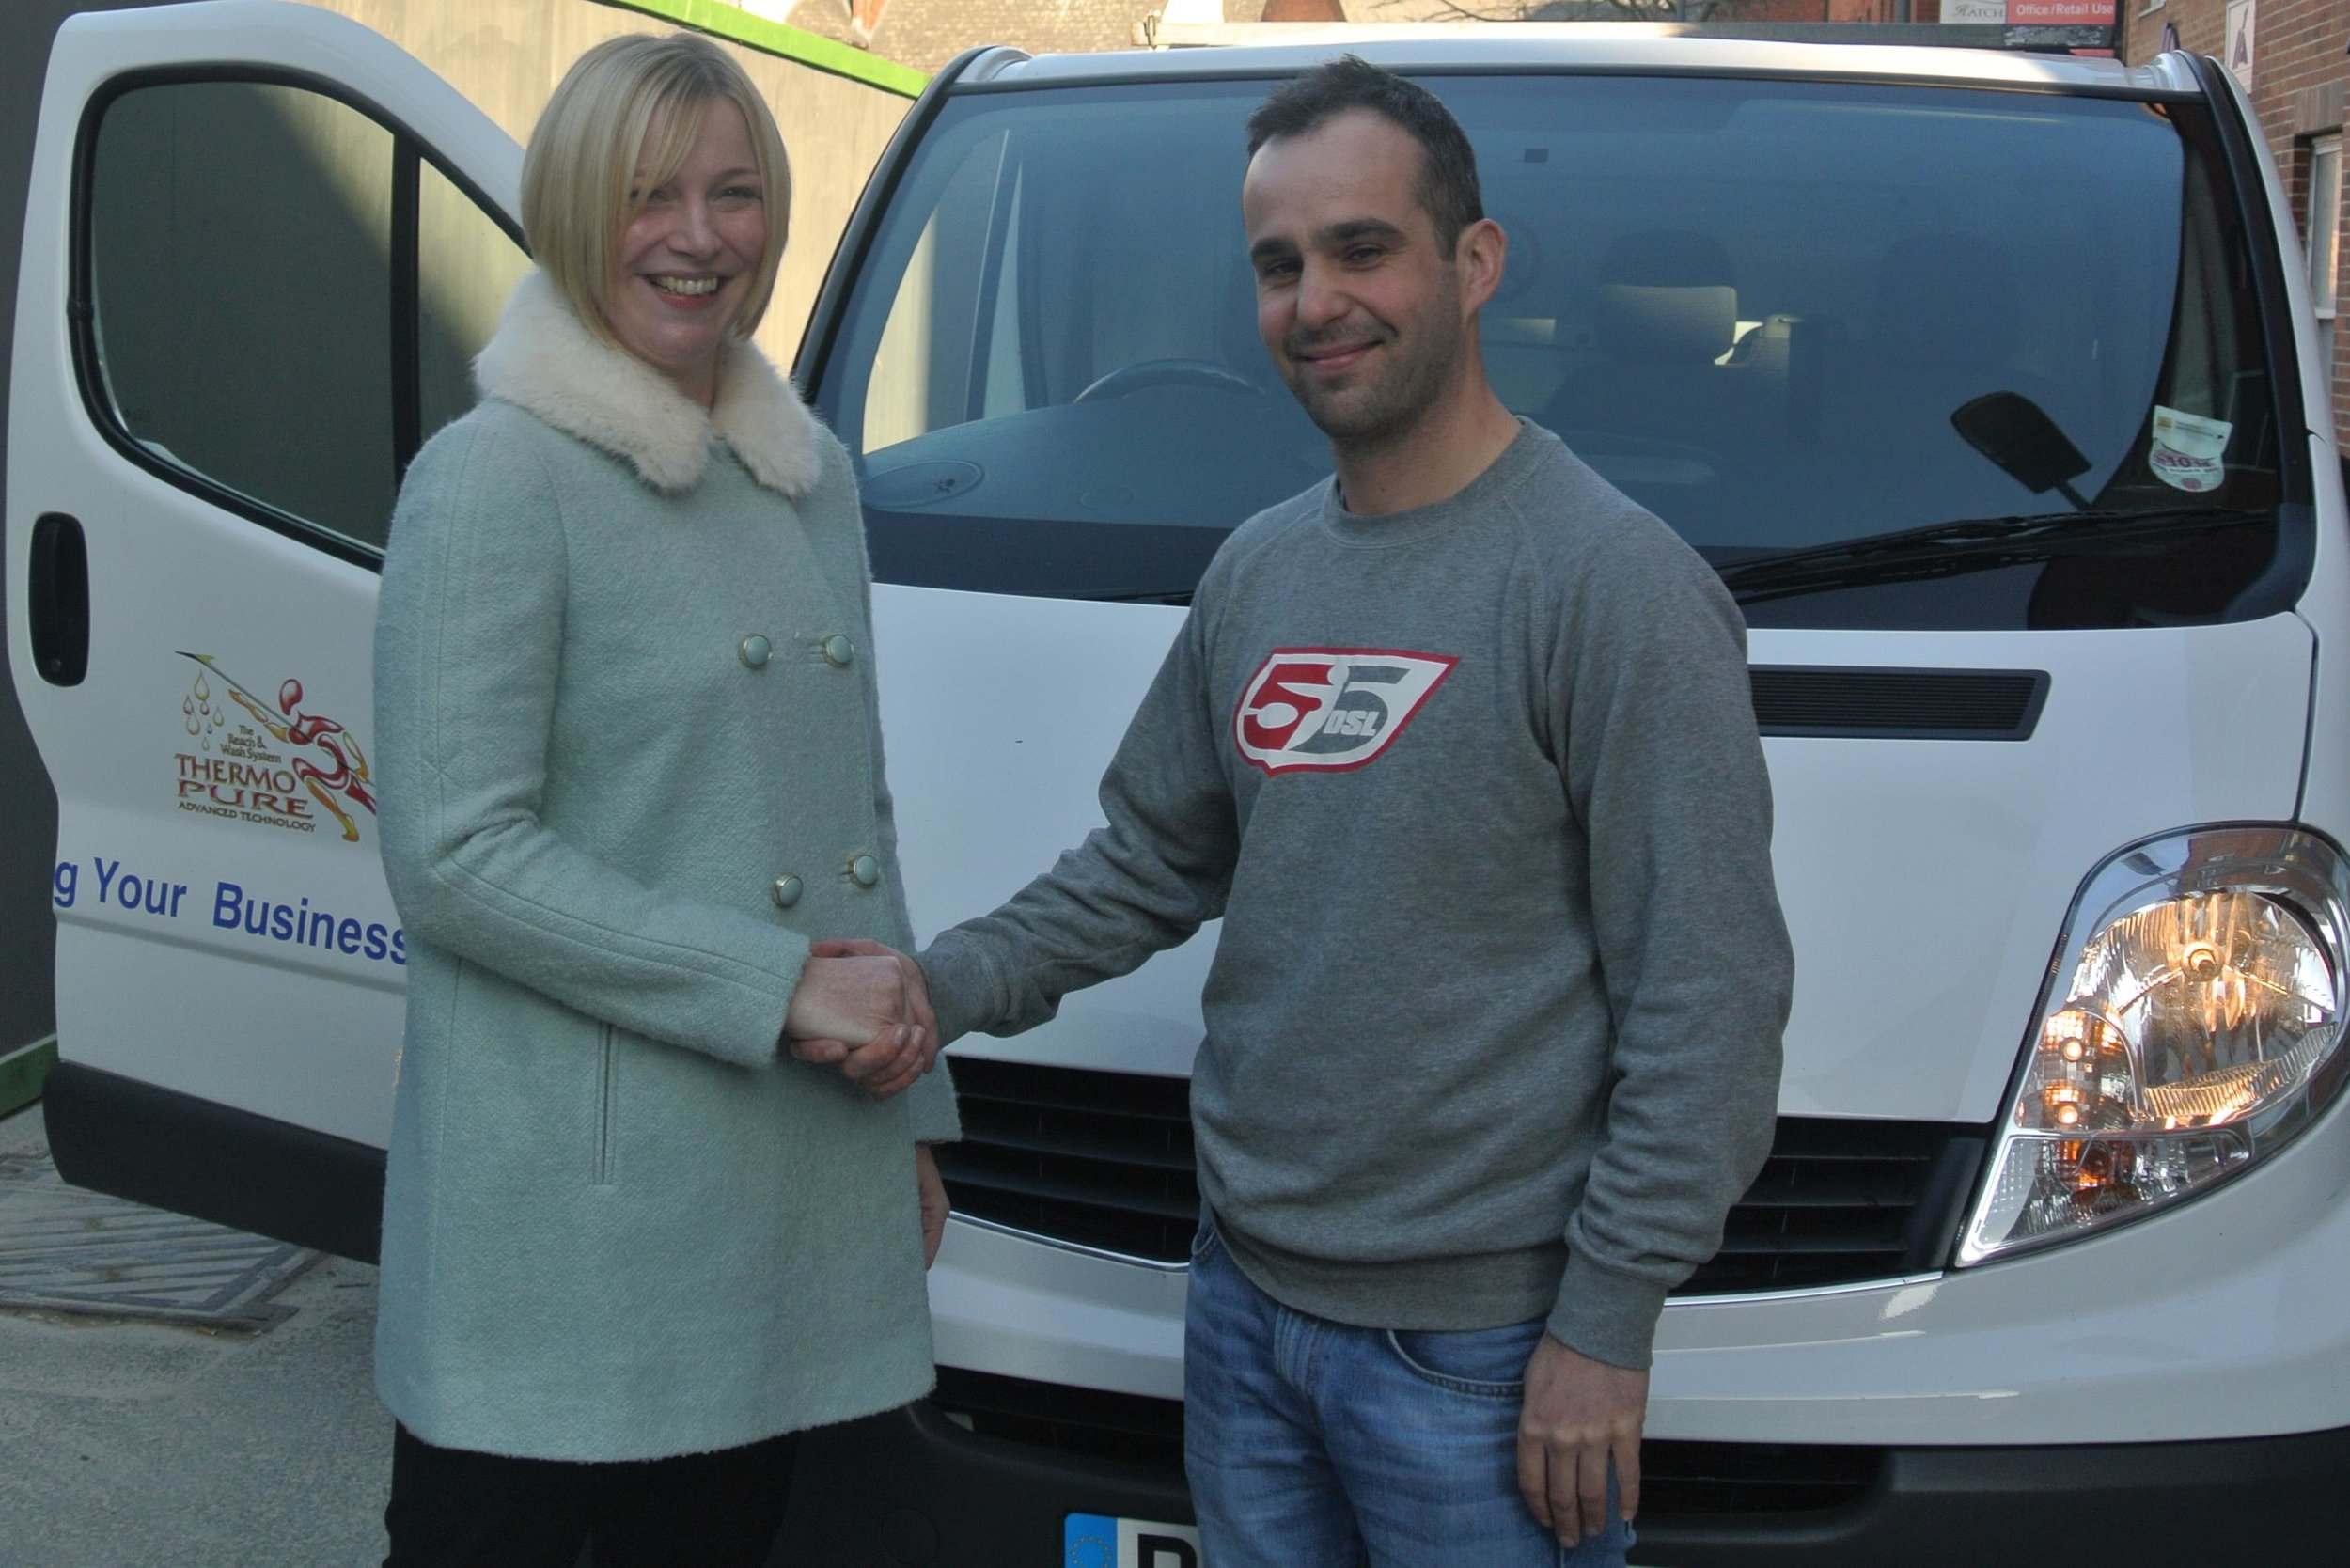 Clare and client shake hands.JPG